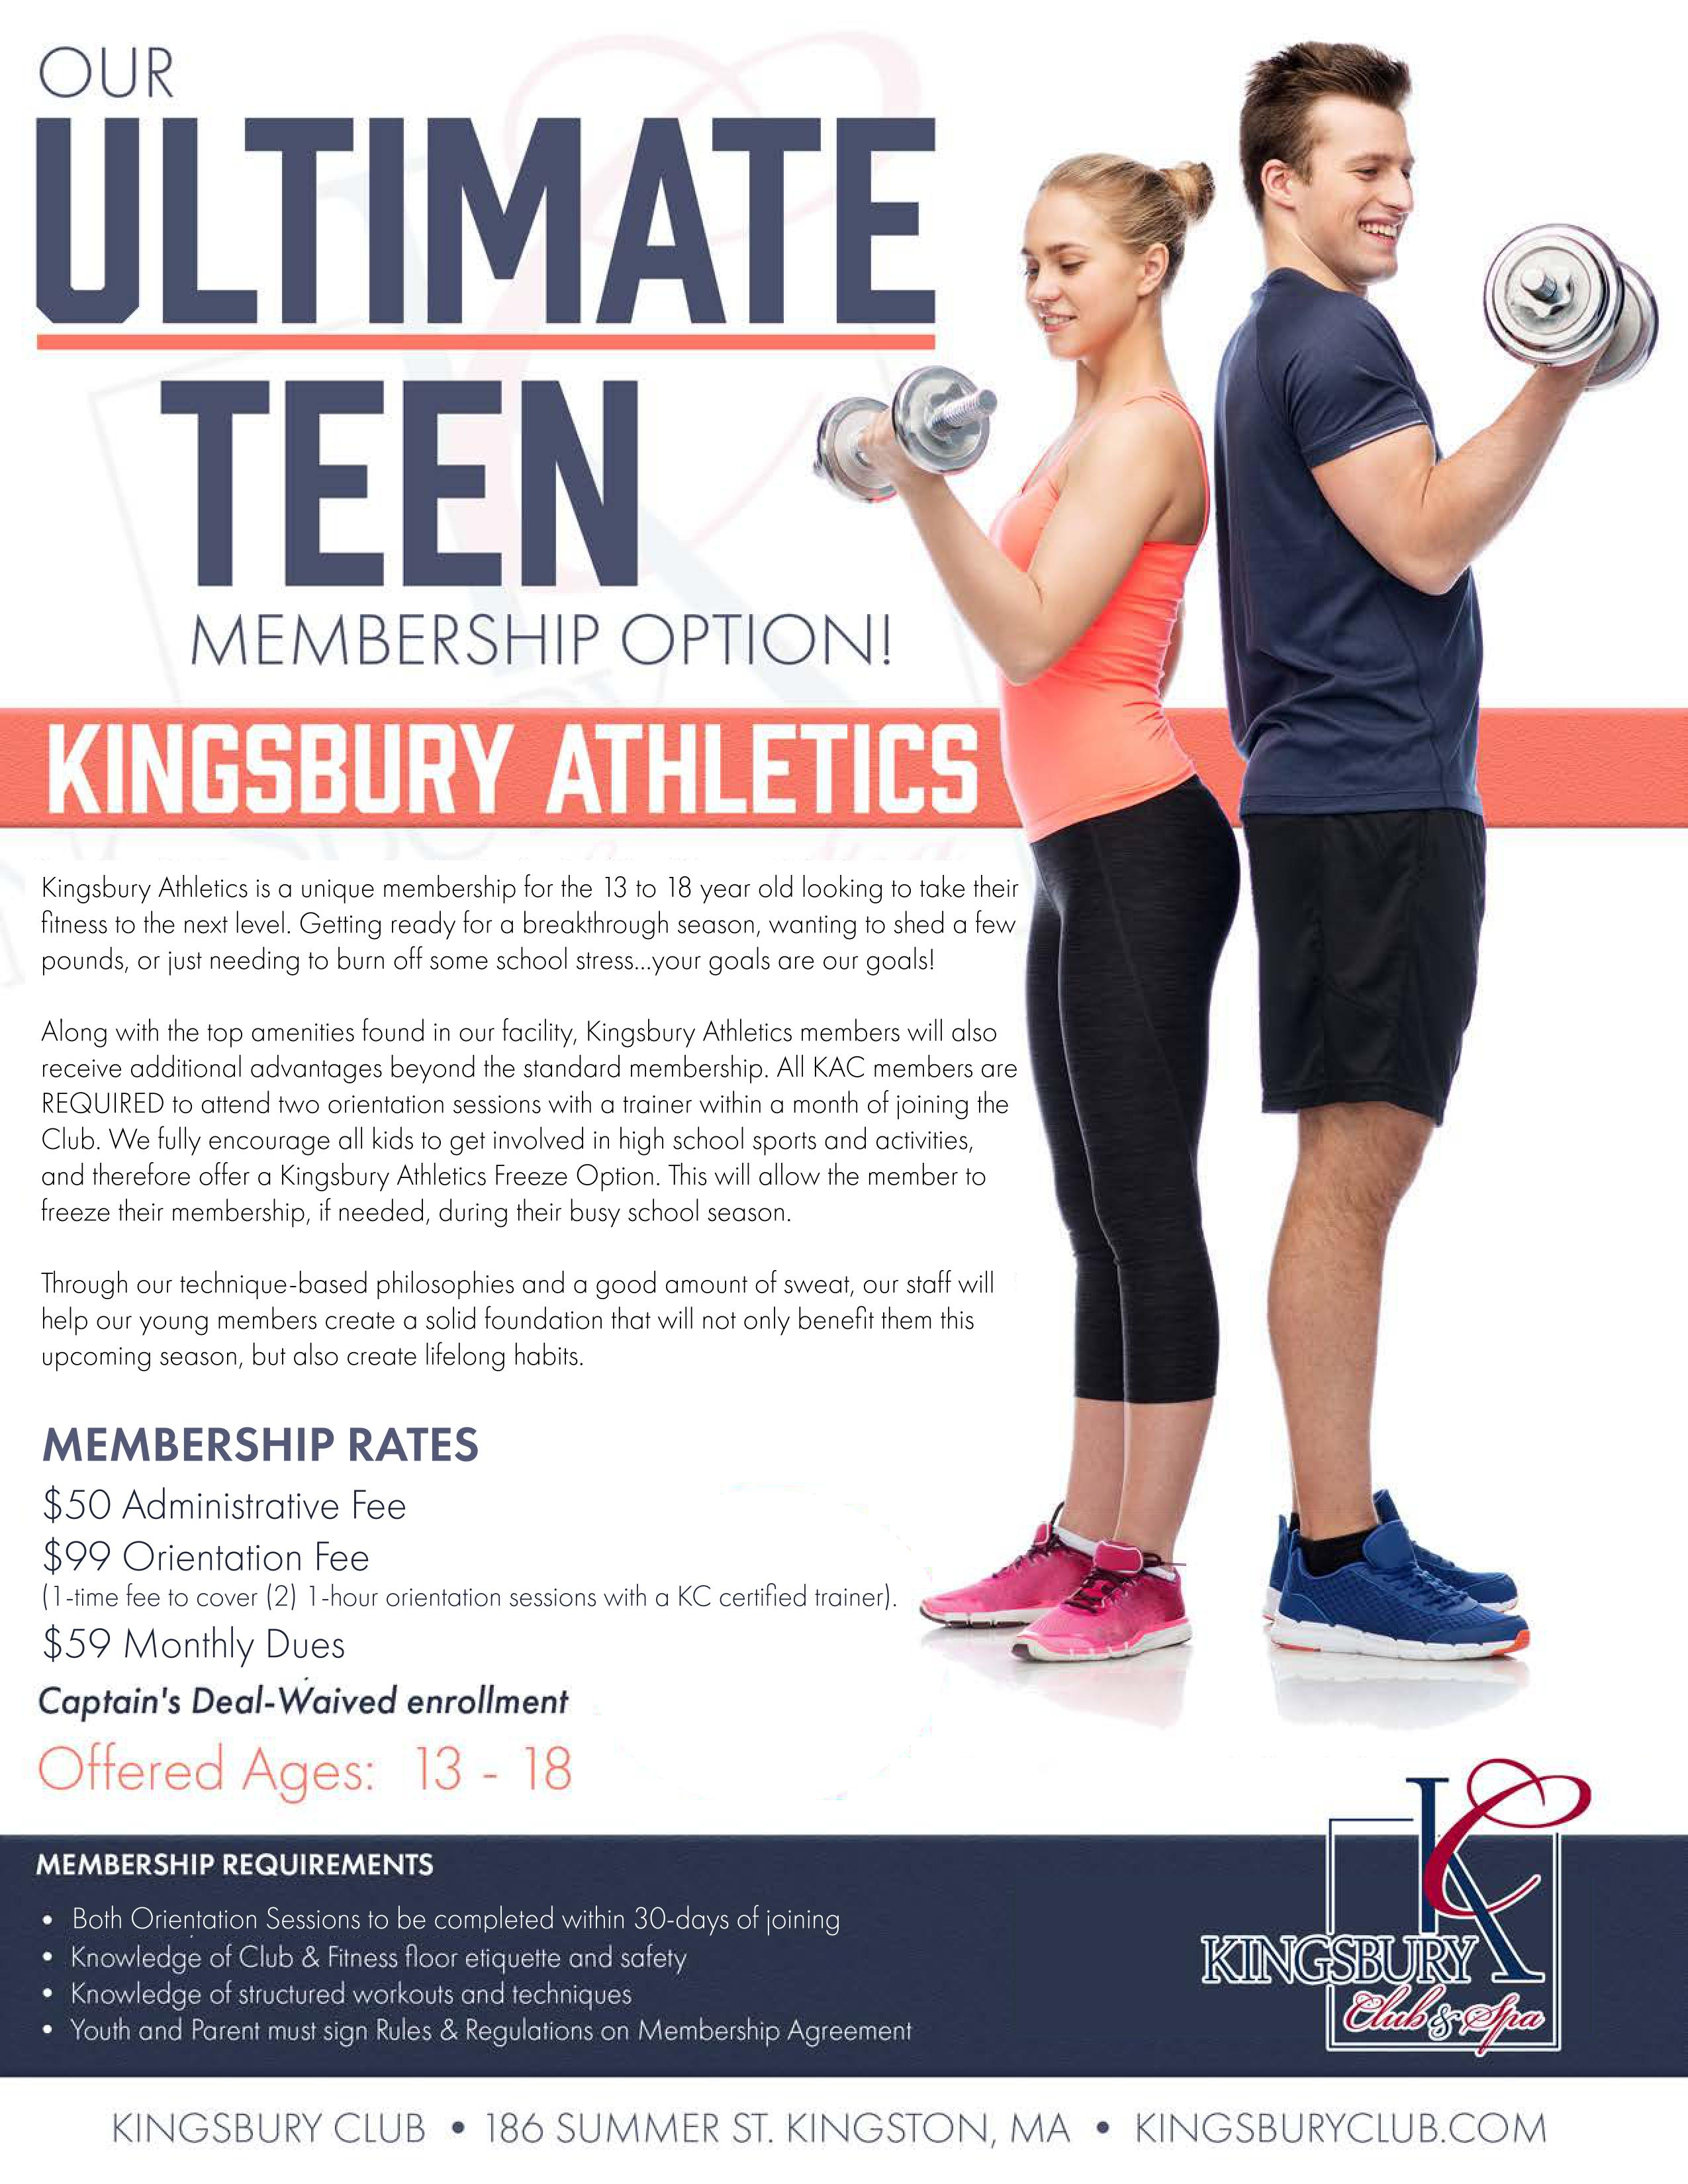 kingsbury athletics ultimate teen